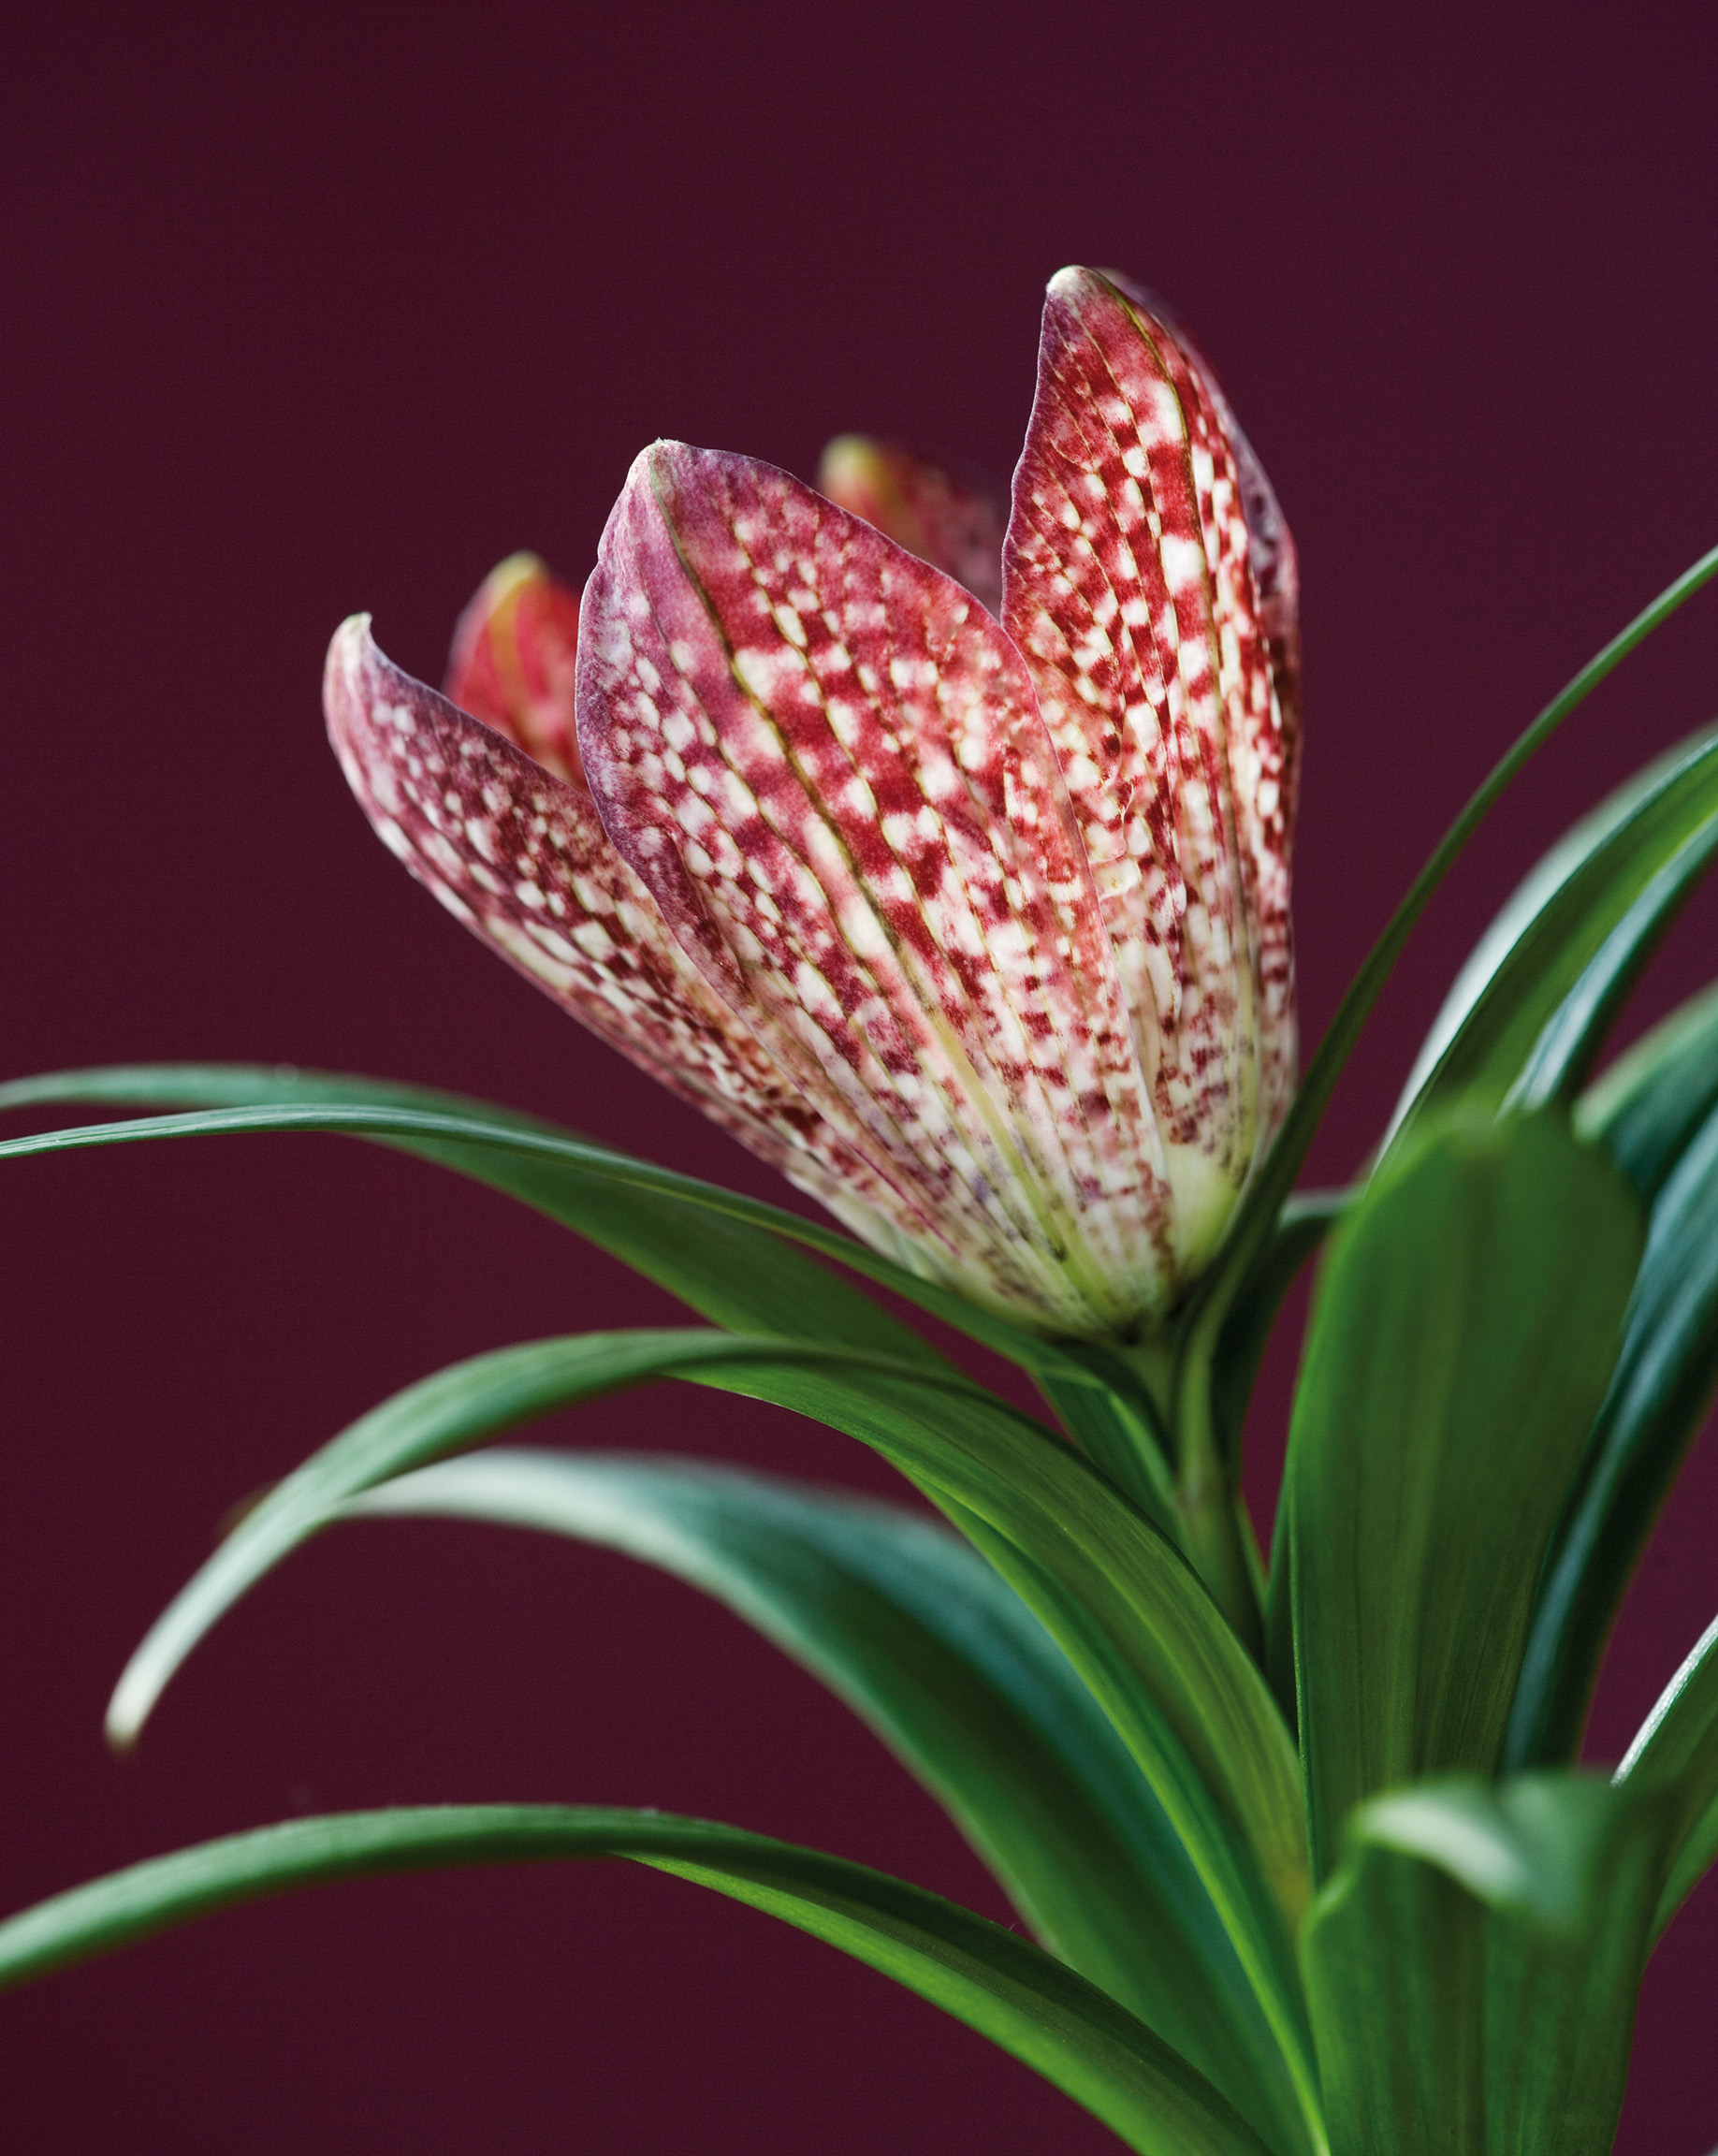 The Flower of Fritillaria